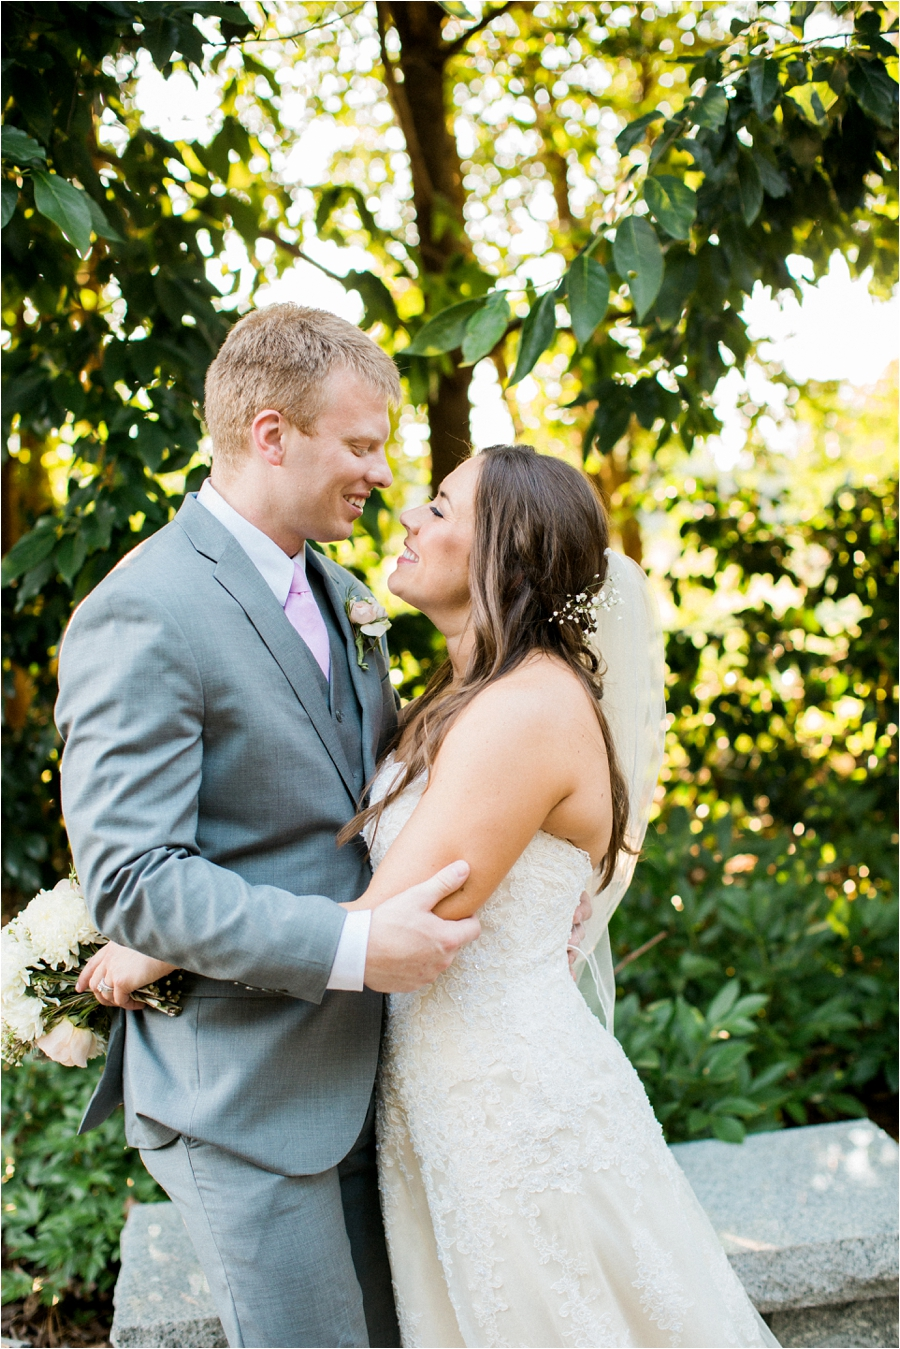 summer wedding at lewis ginter botanical gardens by charlottesville photographer, amy nicole photography_0116